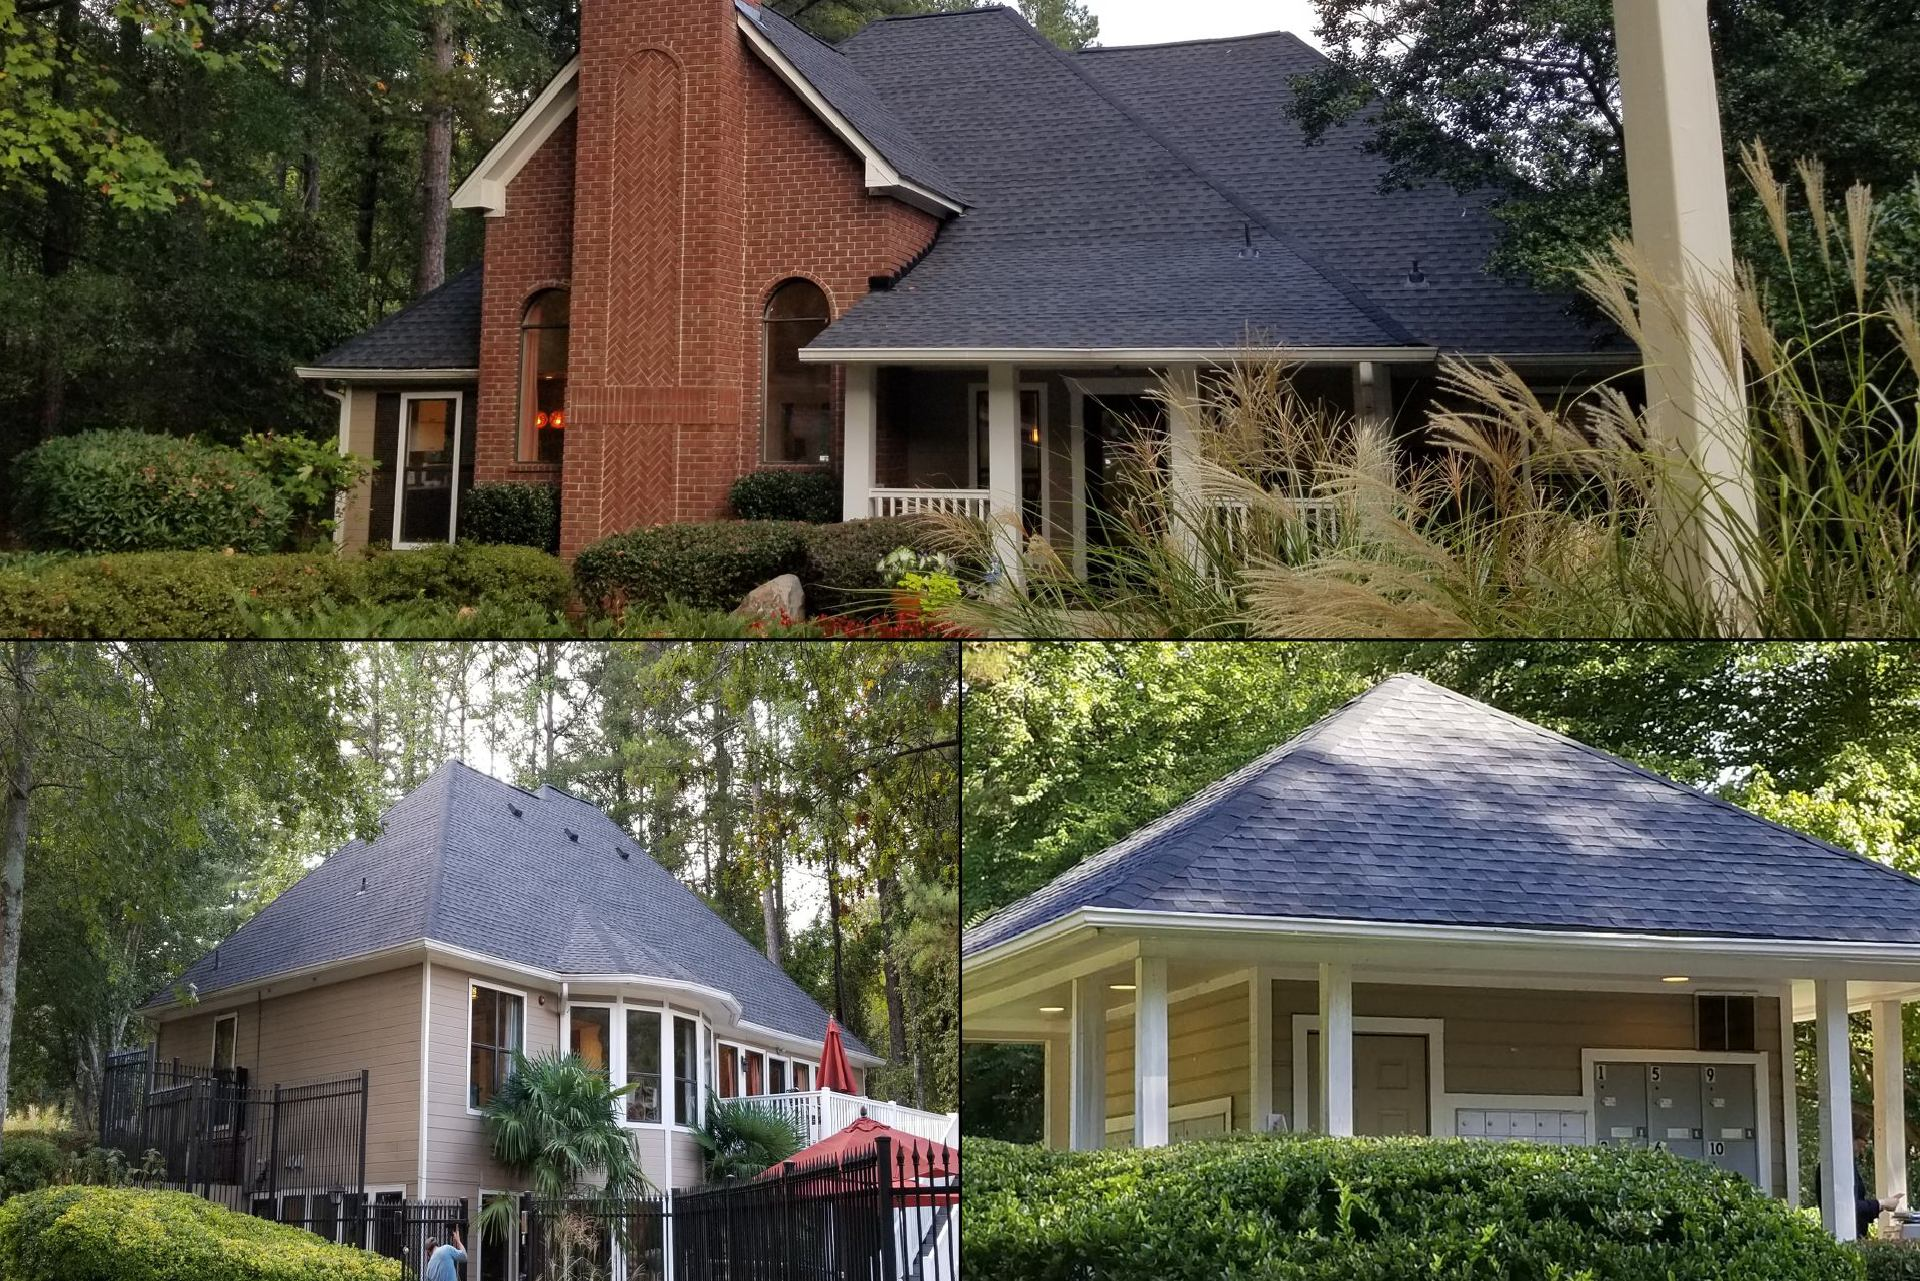 Mancilla Roofing Construction Roof Replacement Repair Home Electrical Wiring In Metro Atlanta Esystems Inc Cumming Ga 10